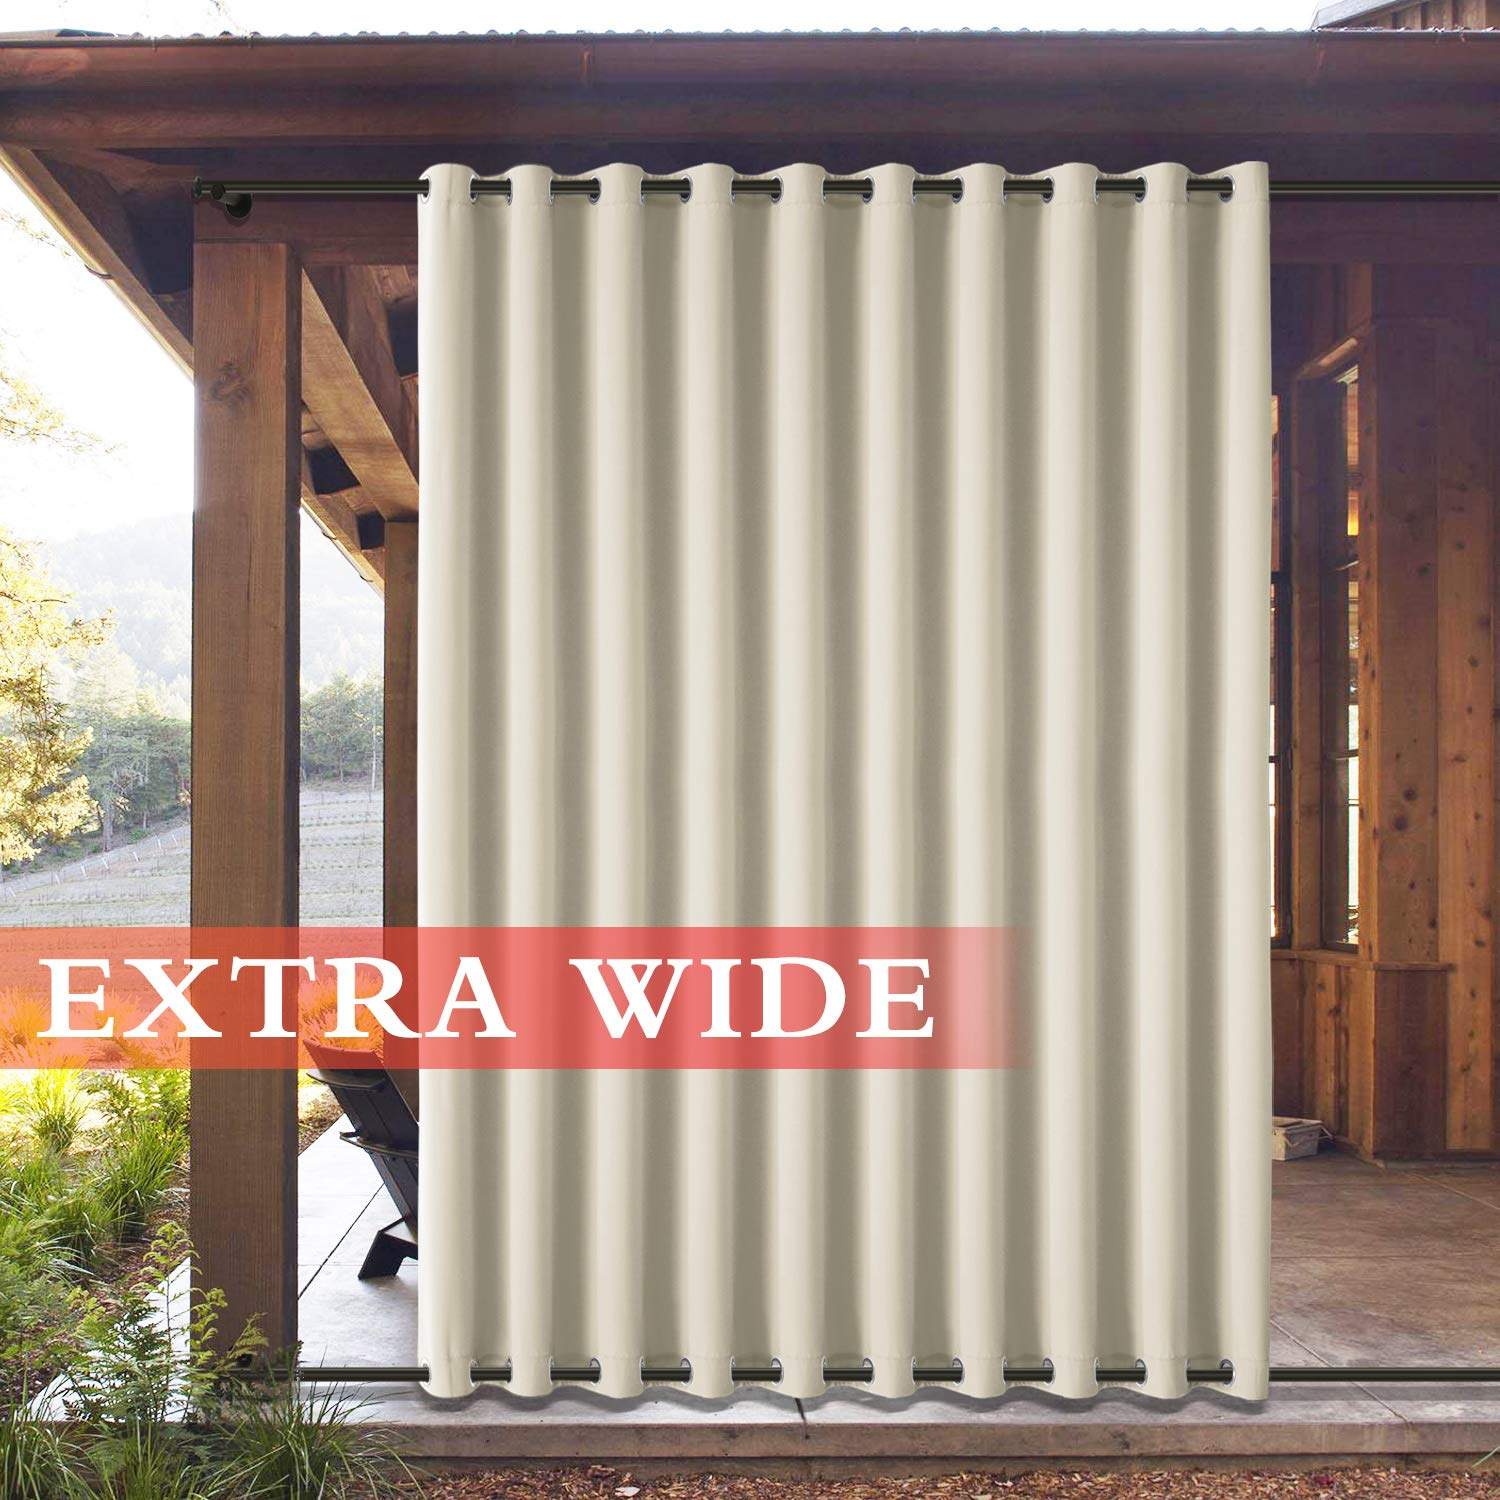 Frelement Outside Drapes Panels for Patio Cabana Indoor/Outdoor Decoration Water Repellent Heat Insulated Outdoor Curtains Rustproof Grommet Top and Bottom, Beige 100W x 102L (1 Panel)